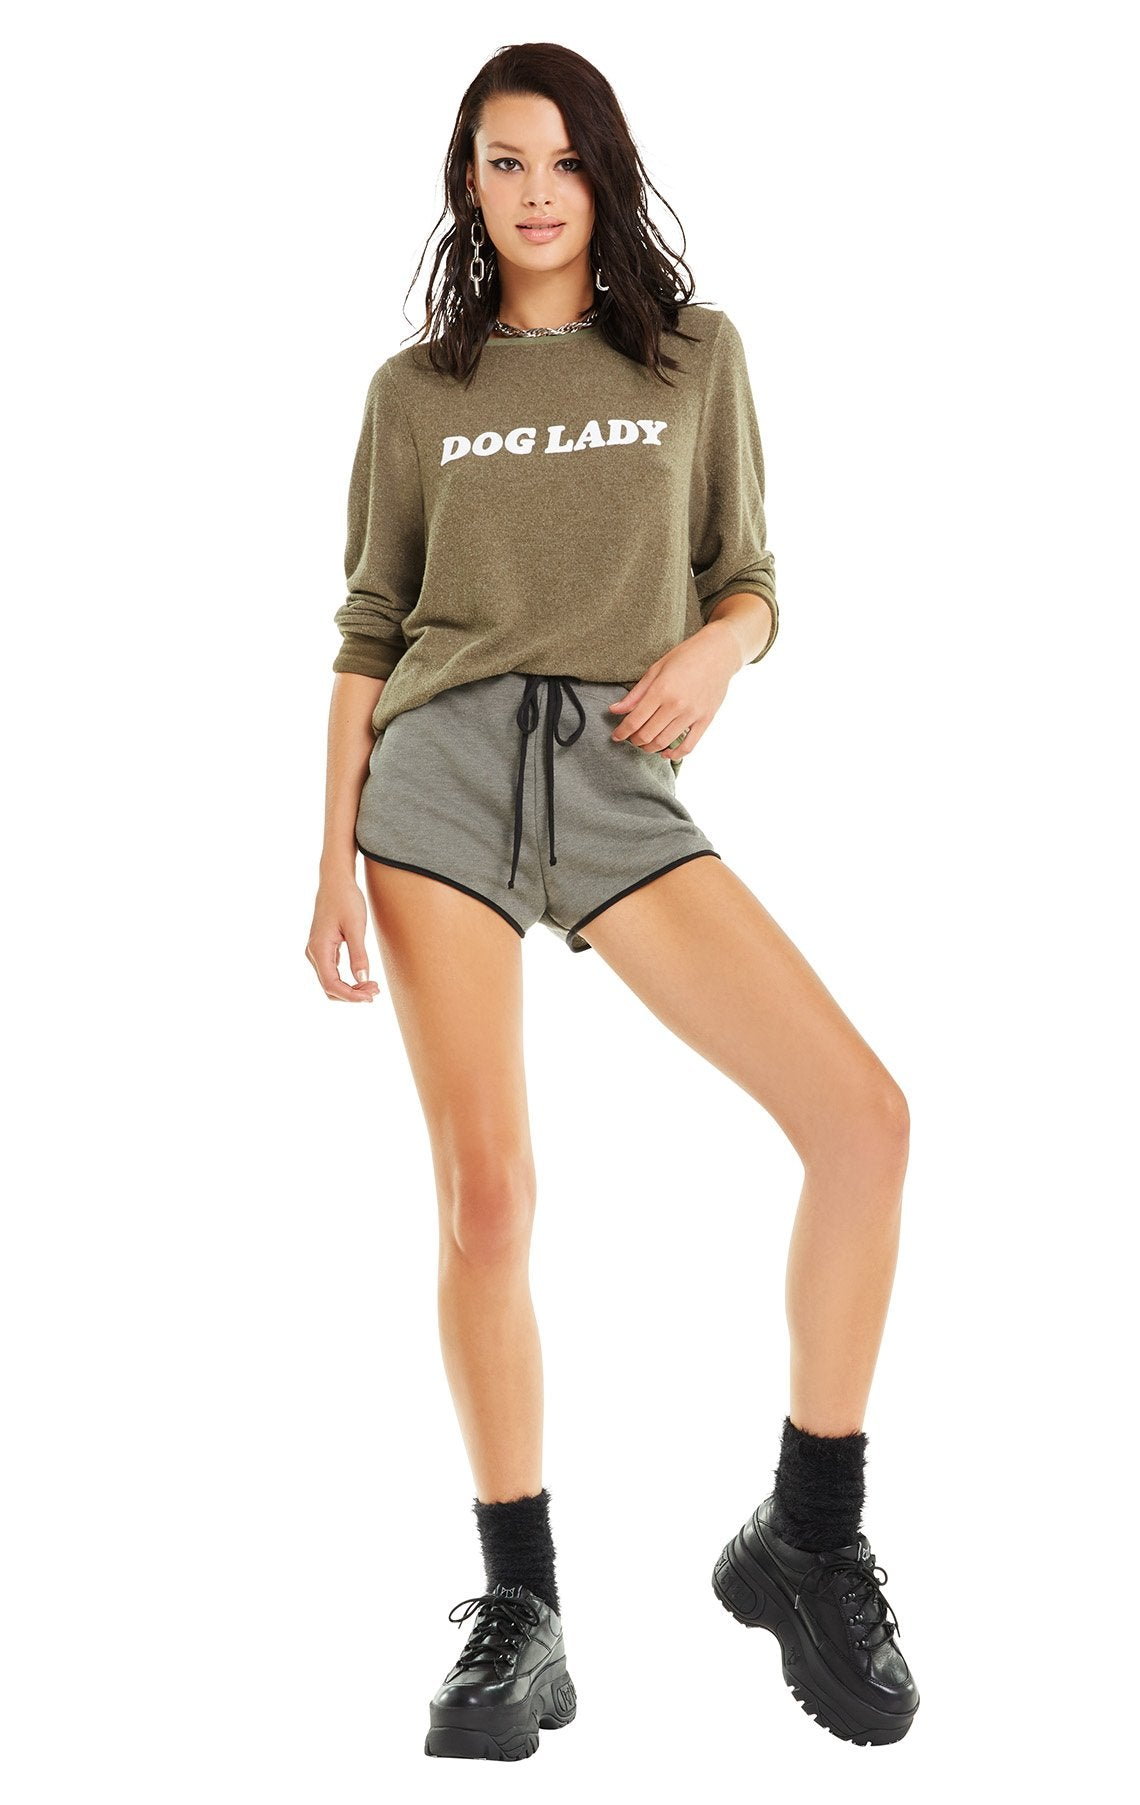 e4a3e8160f Wildfox Dog Lady Baggy Beach Jumper Sweater – Bliss Bandits